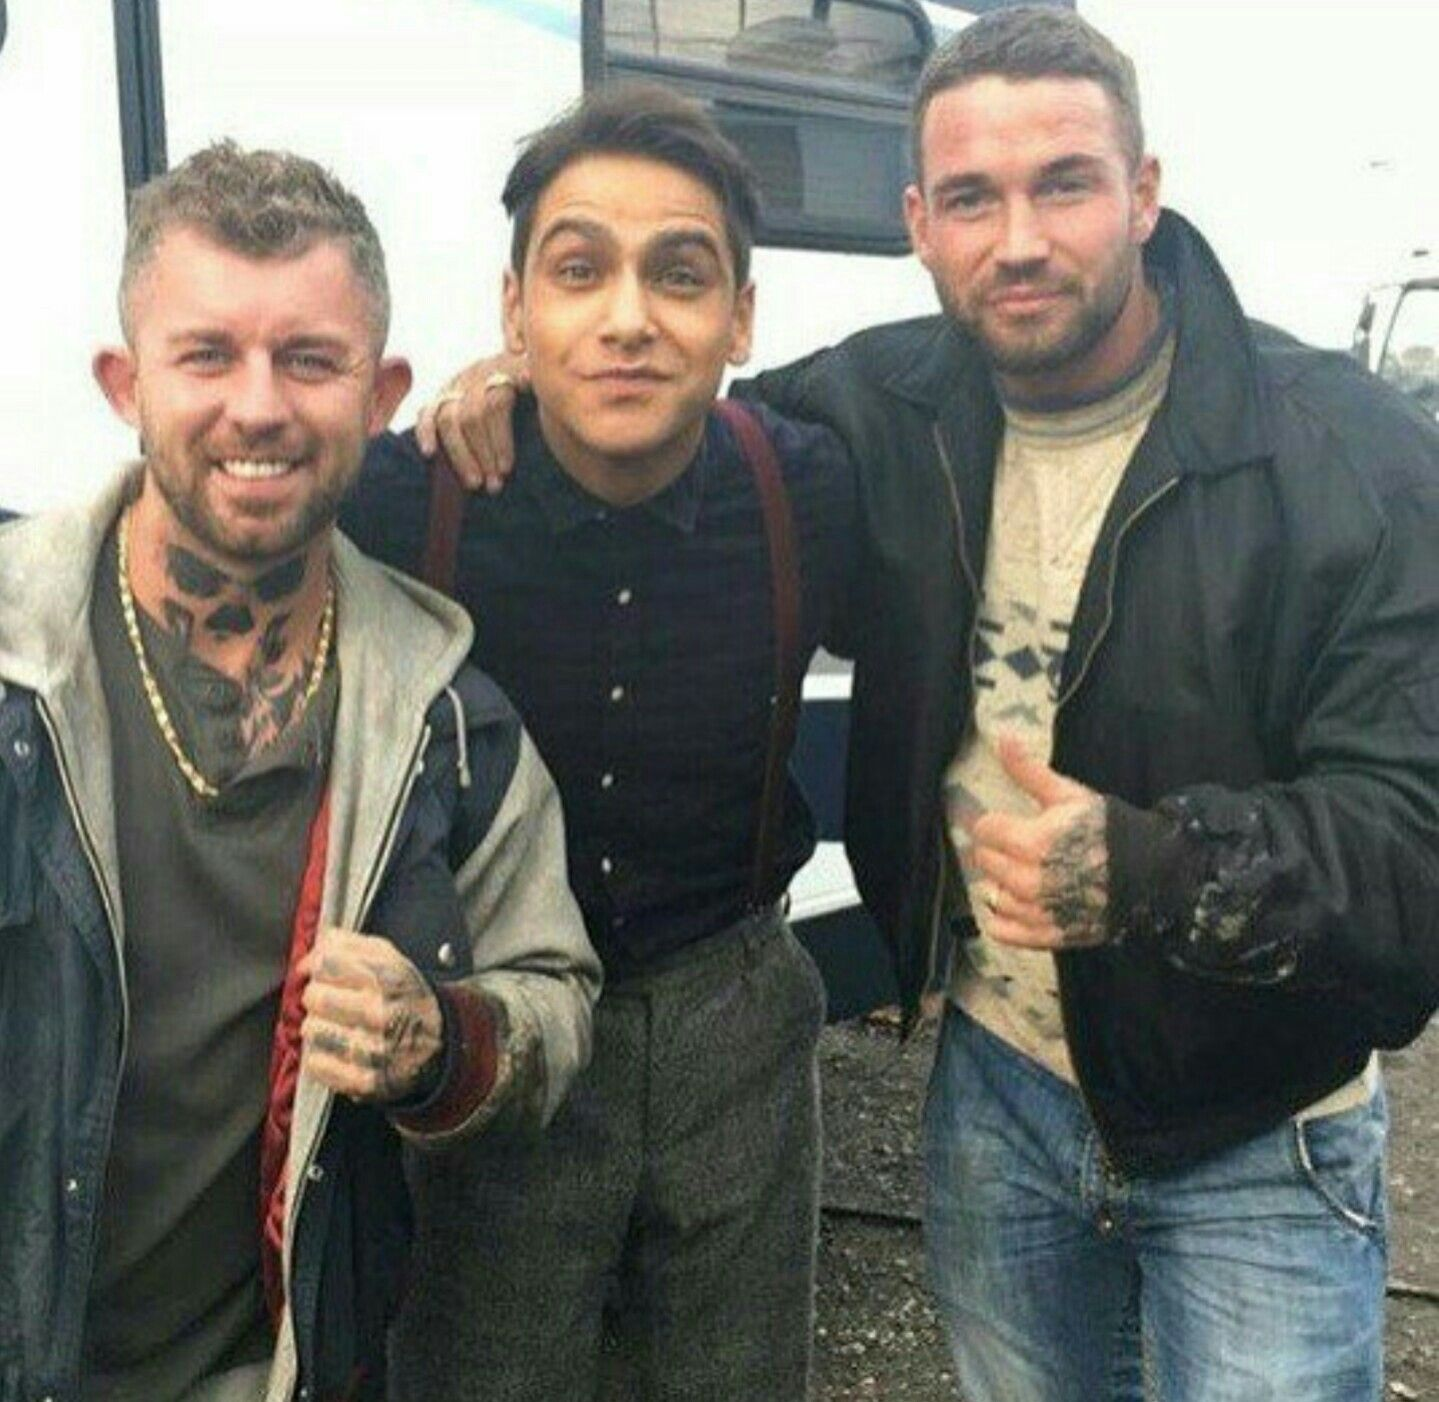 Hanging with some of the chaps from Snatch..